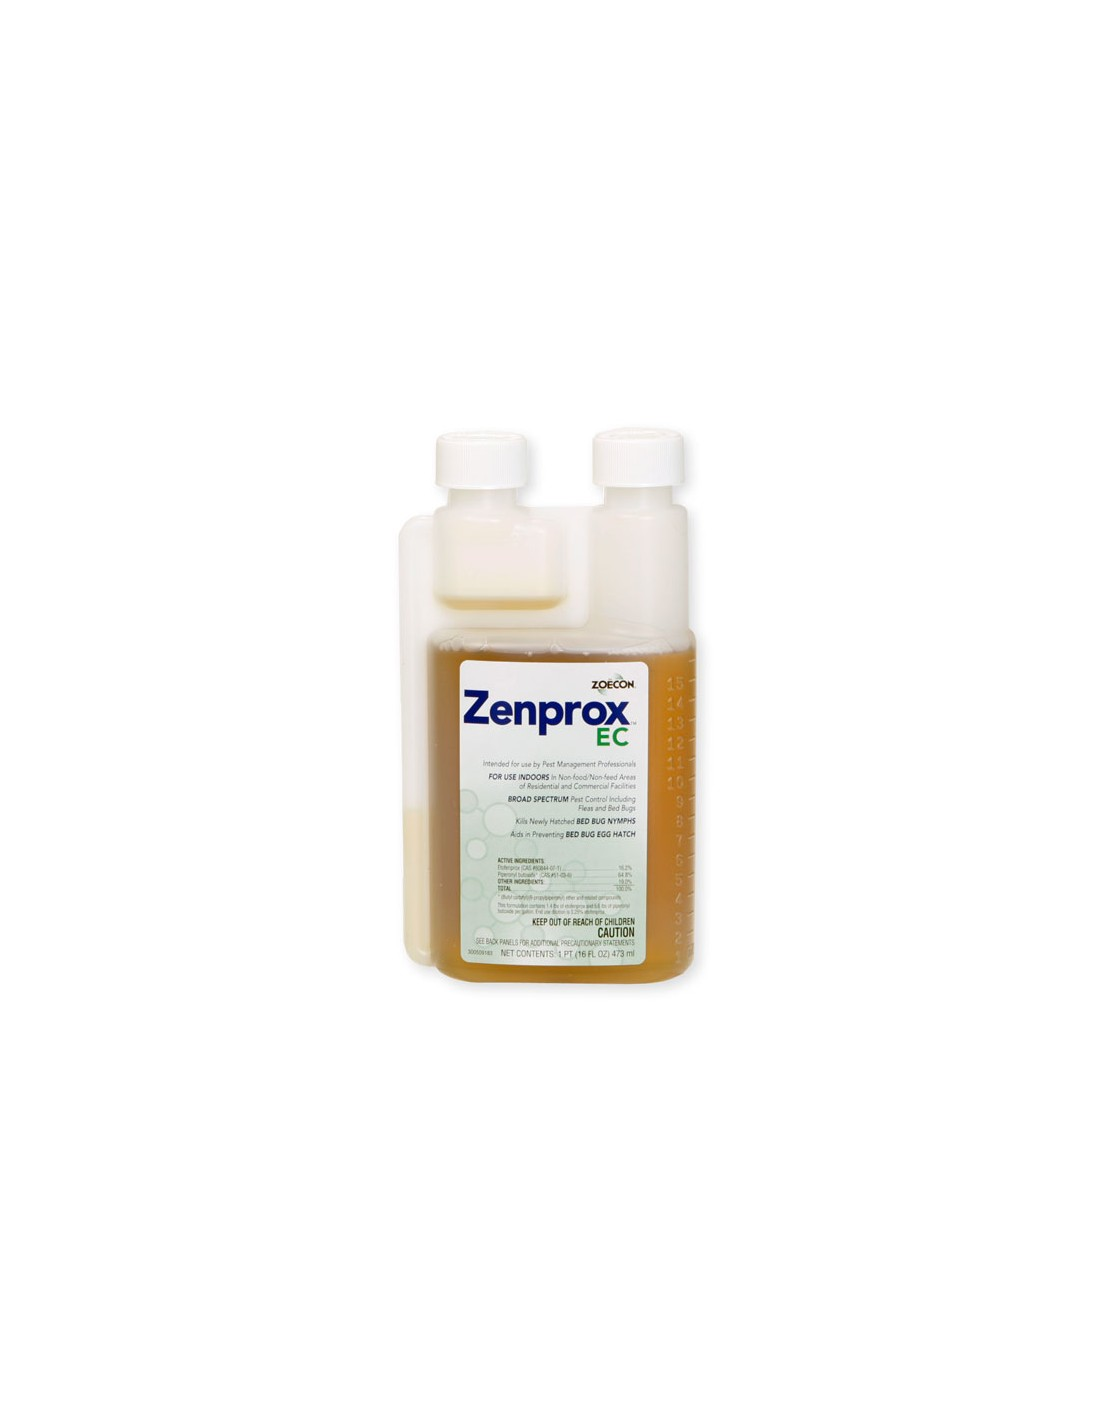 Can you use zenprox EC then bomb for roaches in the same day